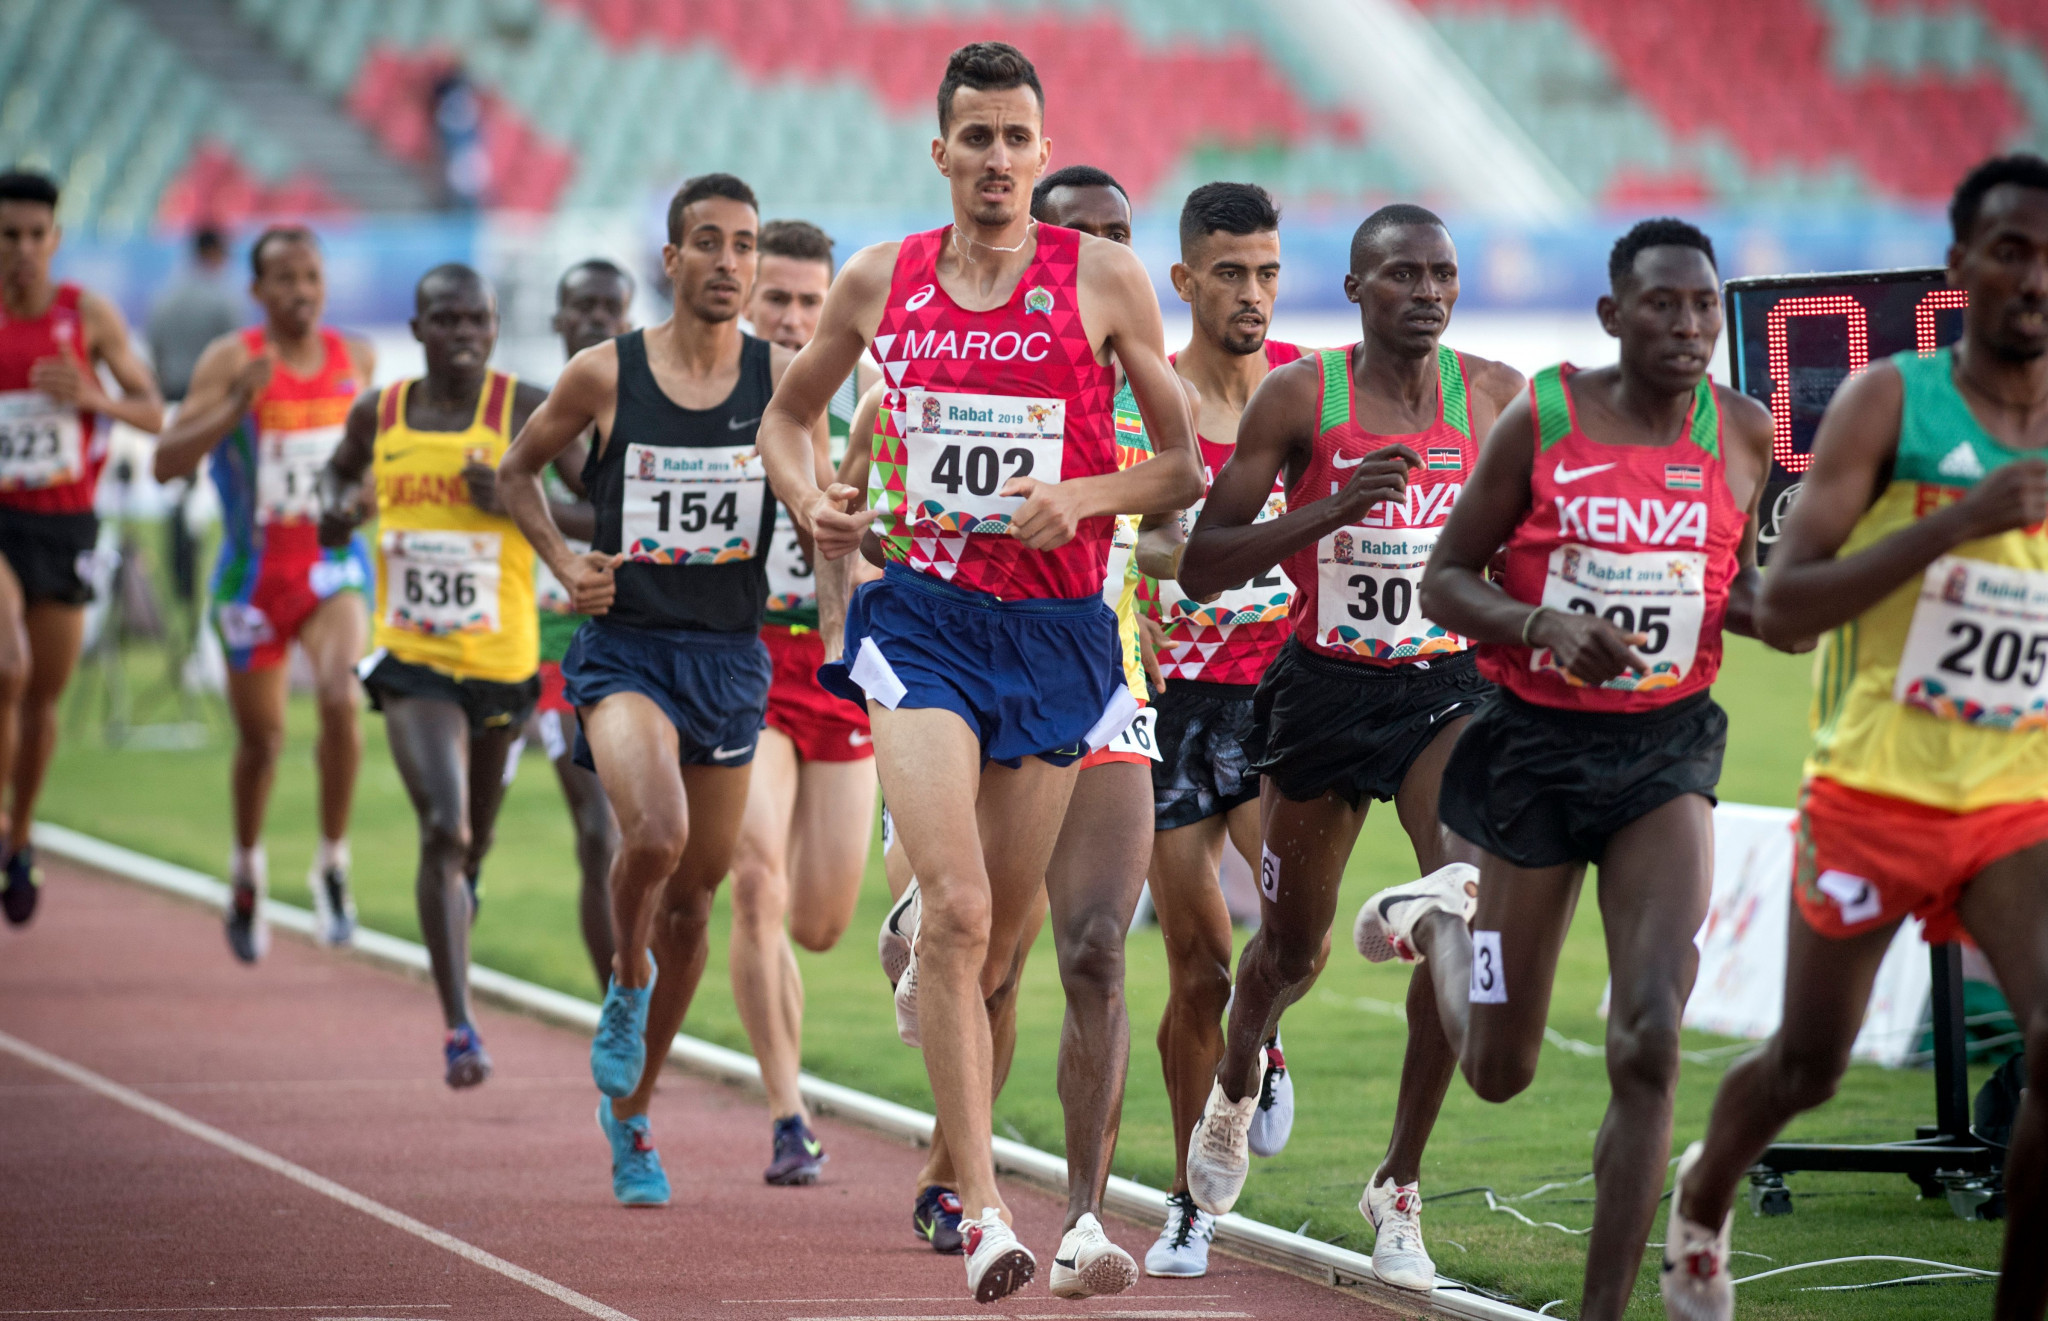 Morocco's Soufiane El Bakkali finished with the bronze medal in the men's 3000m steeplechase at the African Games ©Getty Images